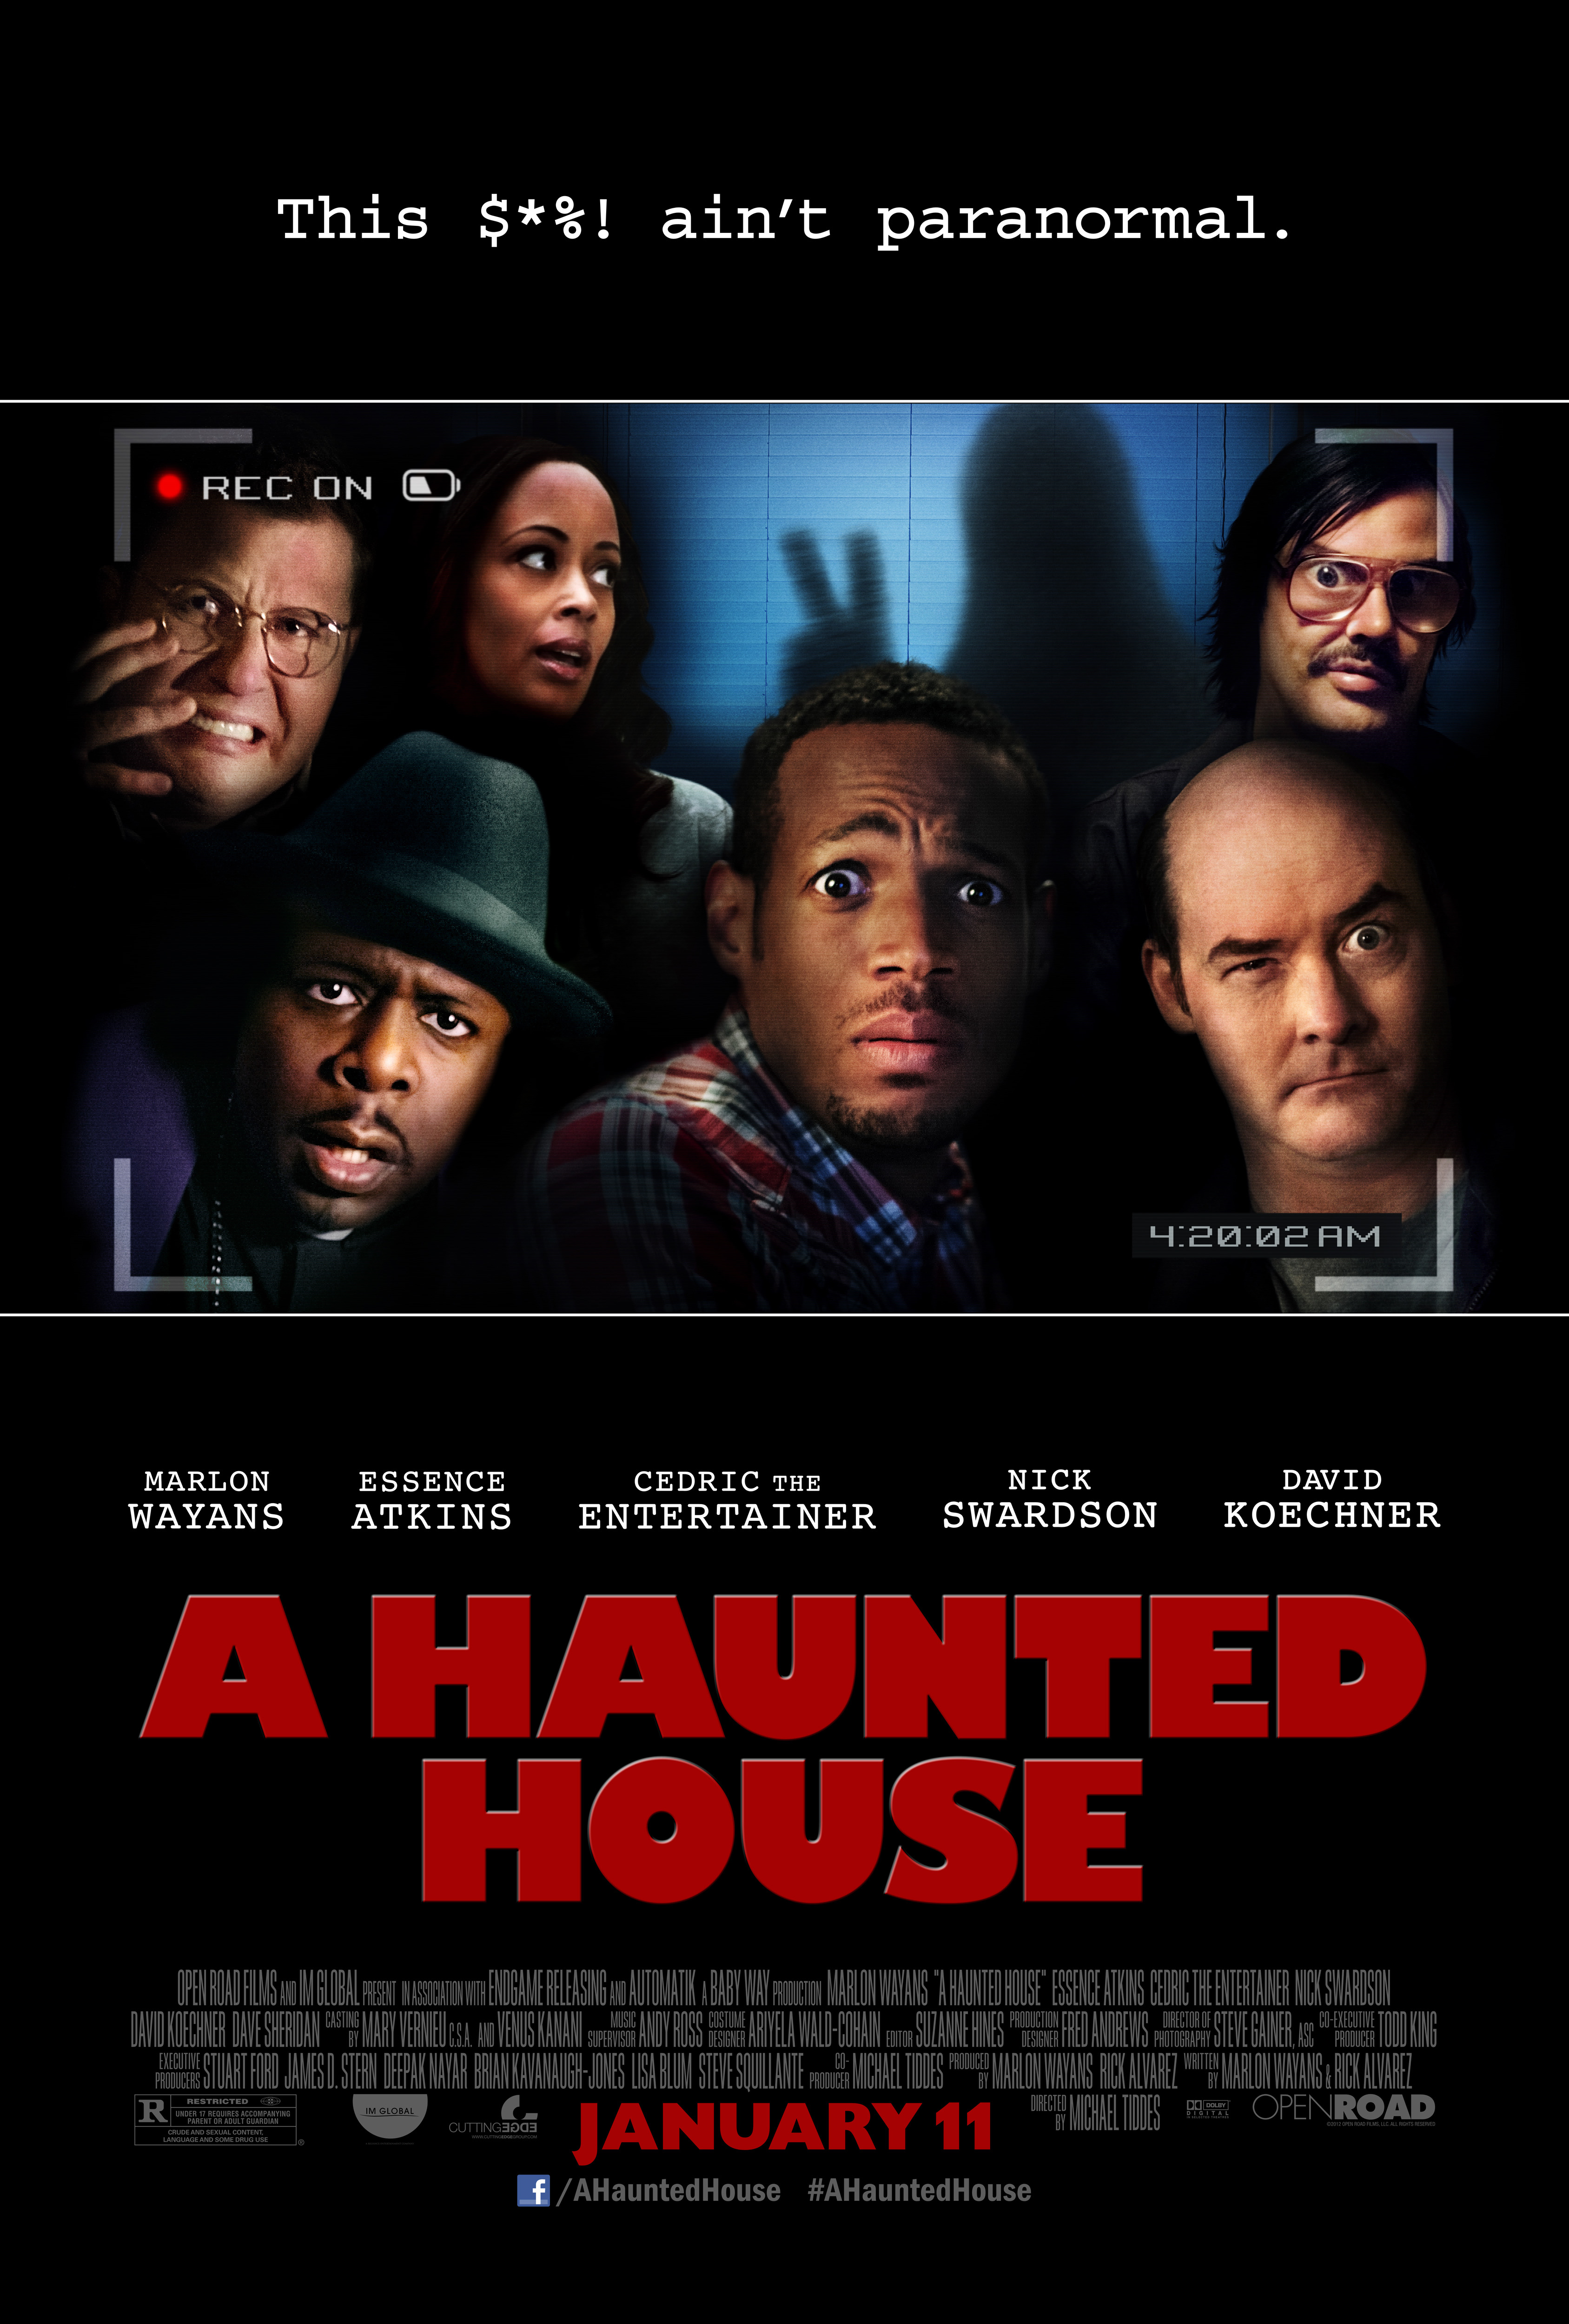 A Haunted House - Movie Poster #1 (Original)